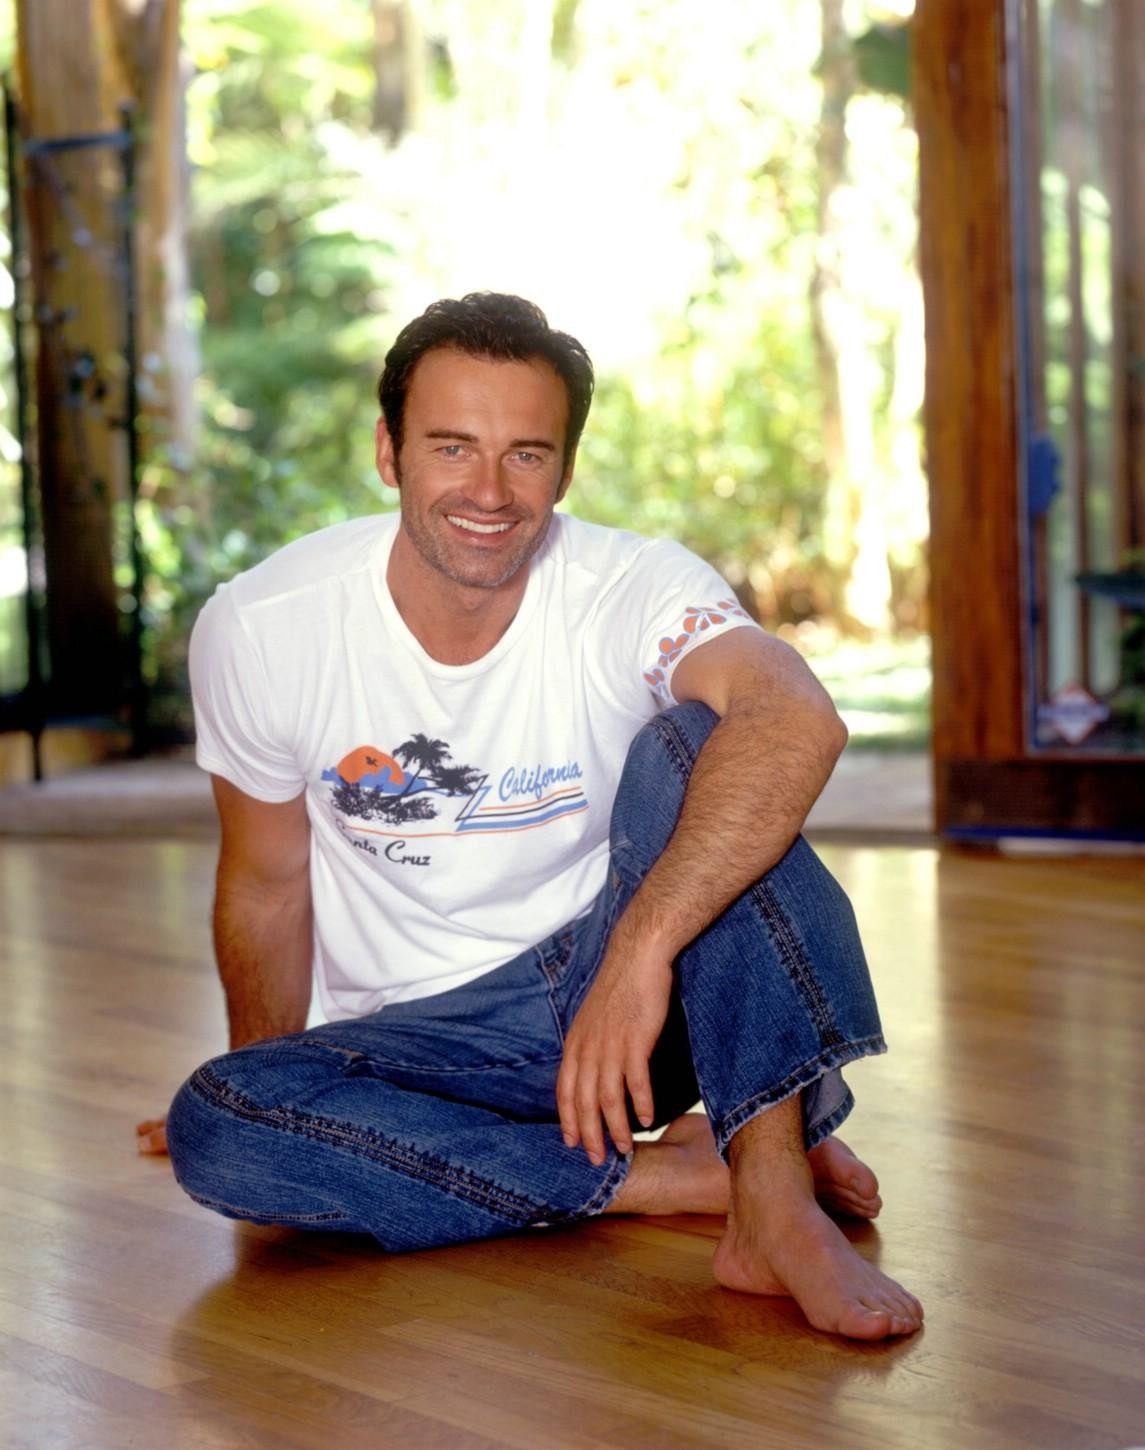 Seems Videos porno de julian mcmahon consider, that